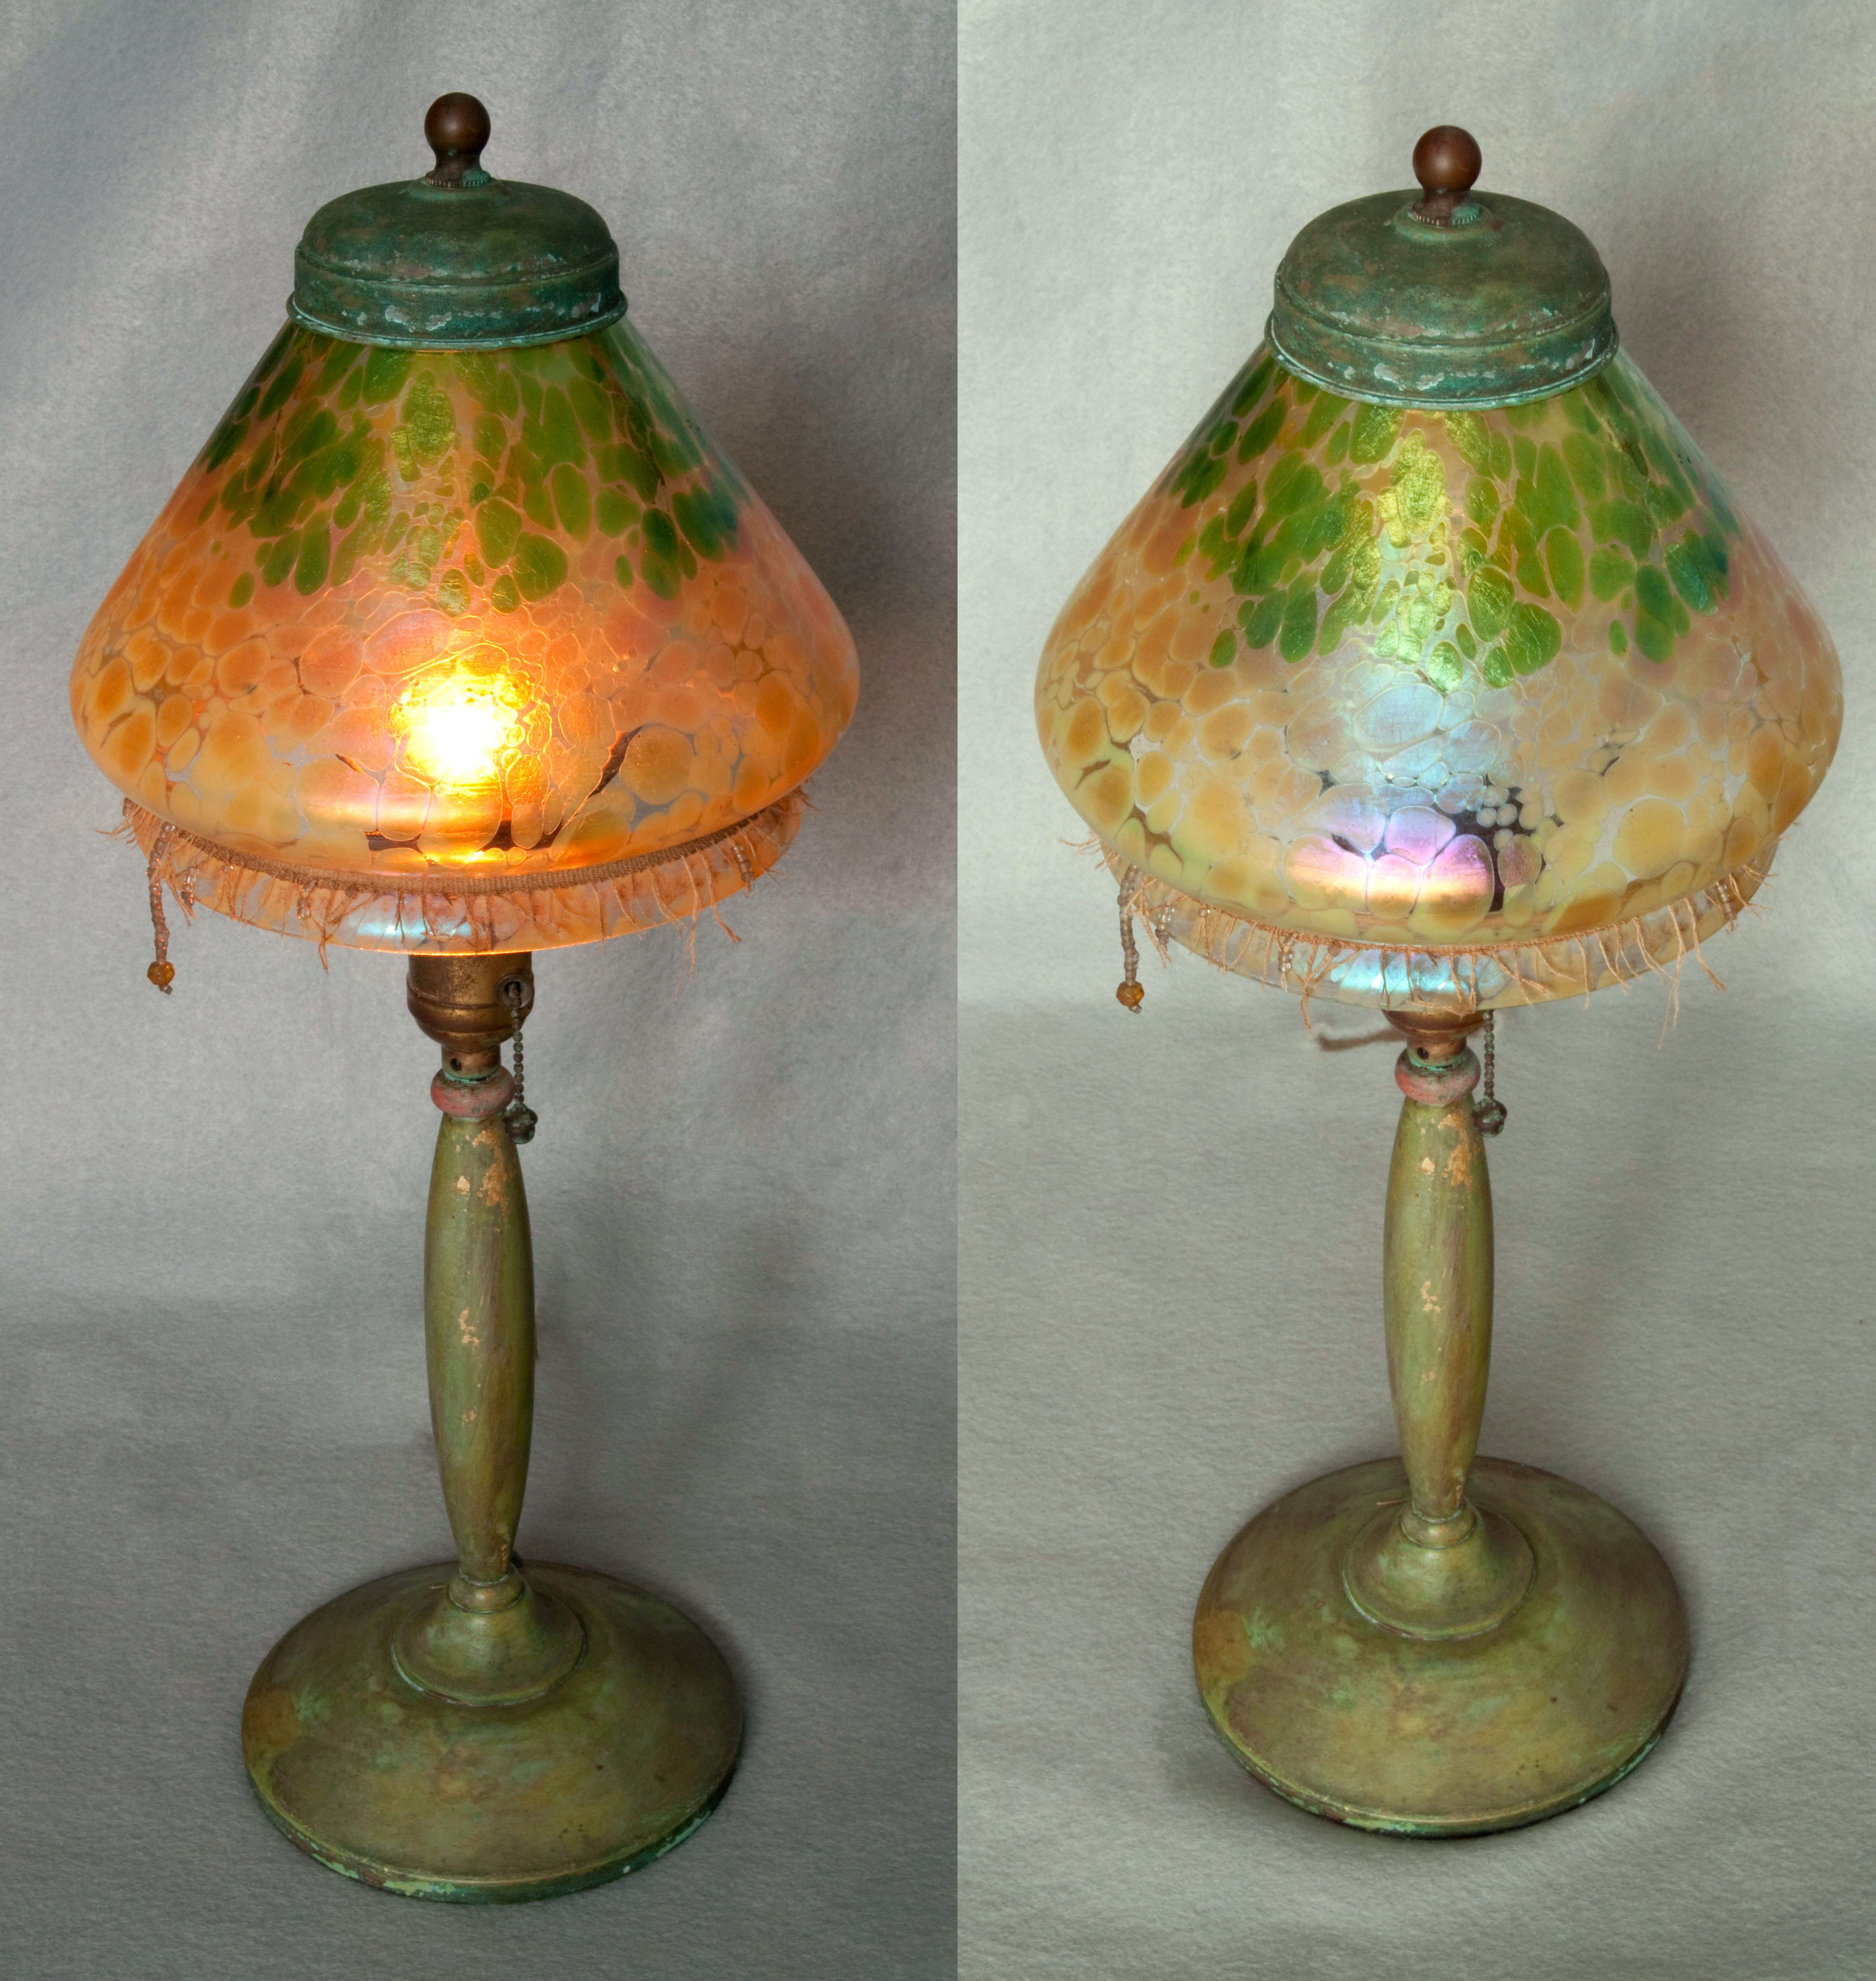 Bohemian Art Nouveau Lamps With Art Glass Shades Possibly